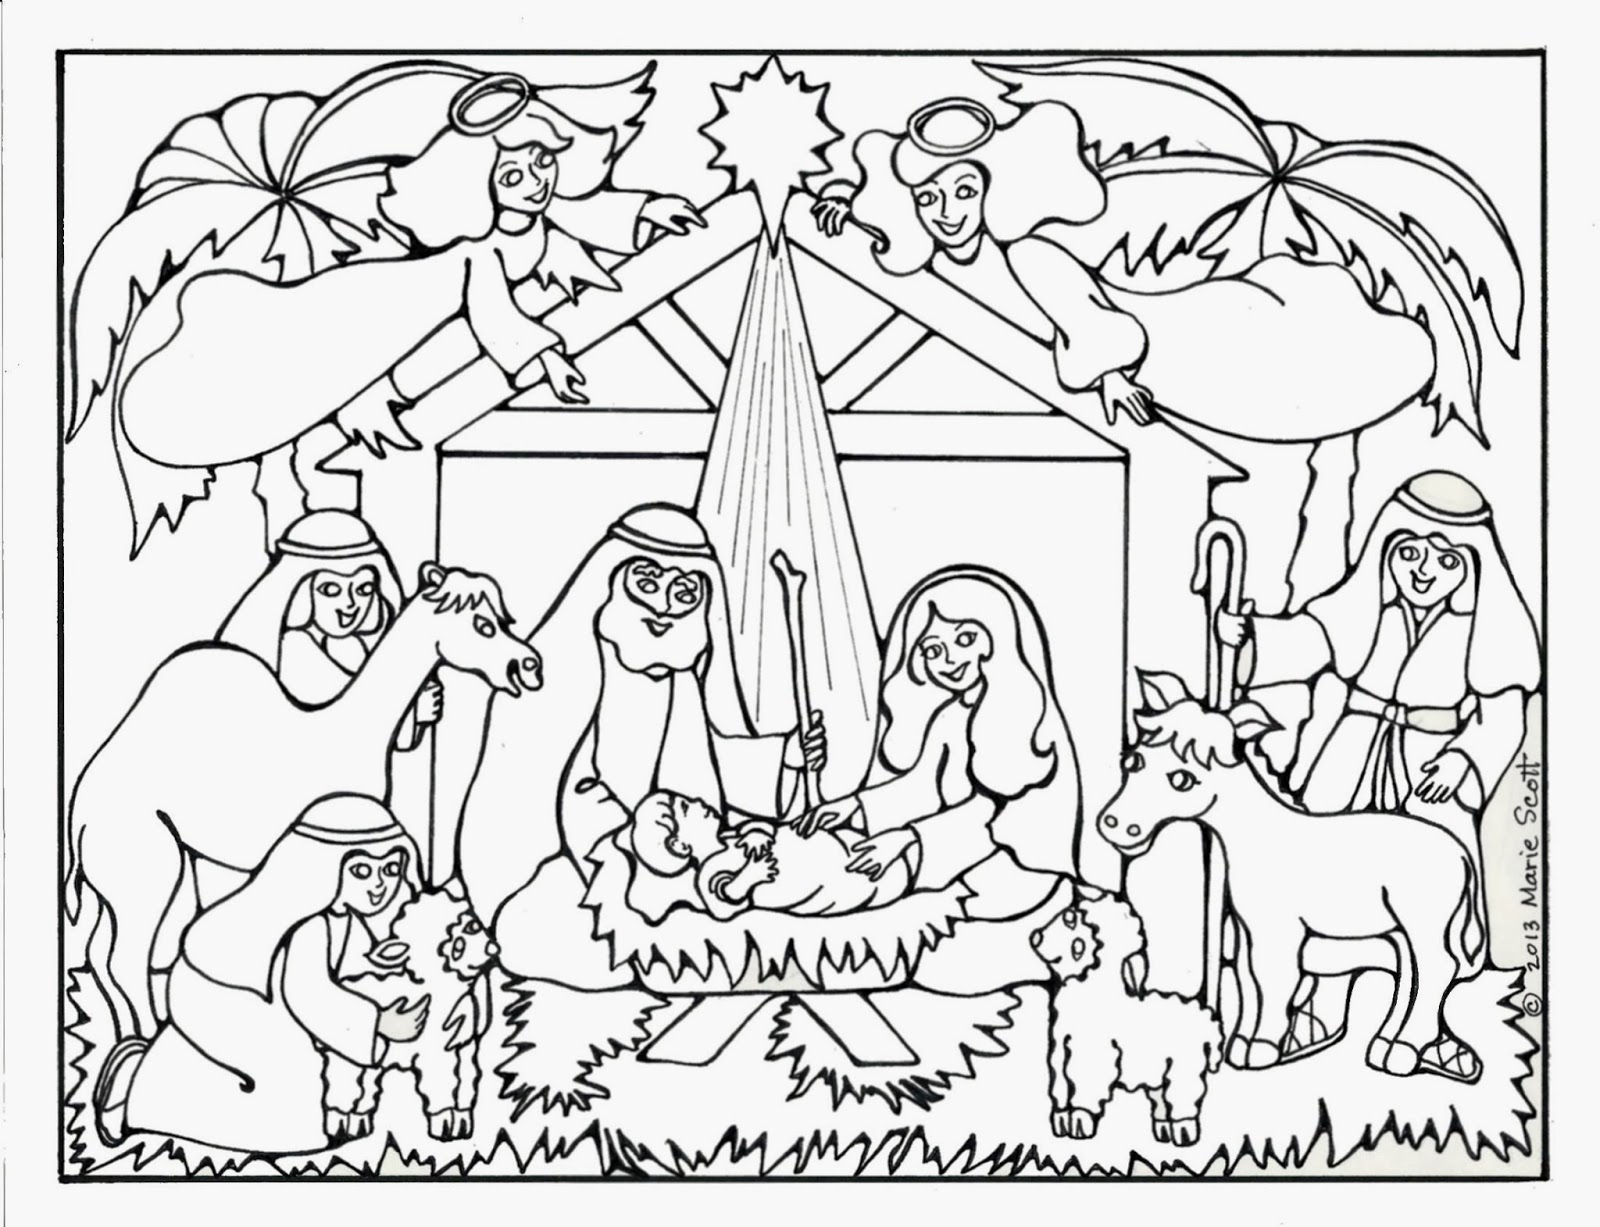 1600x1227 Manger Scene Coloring Page Preschool In Humorous Draw Print Kids